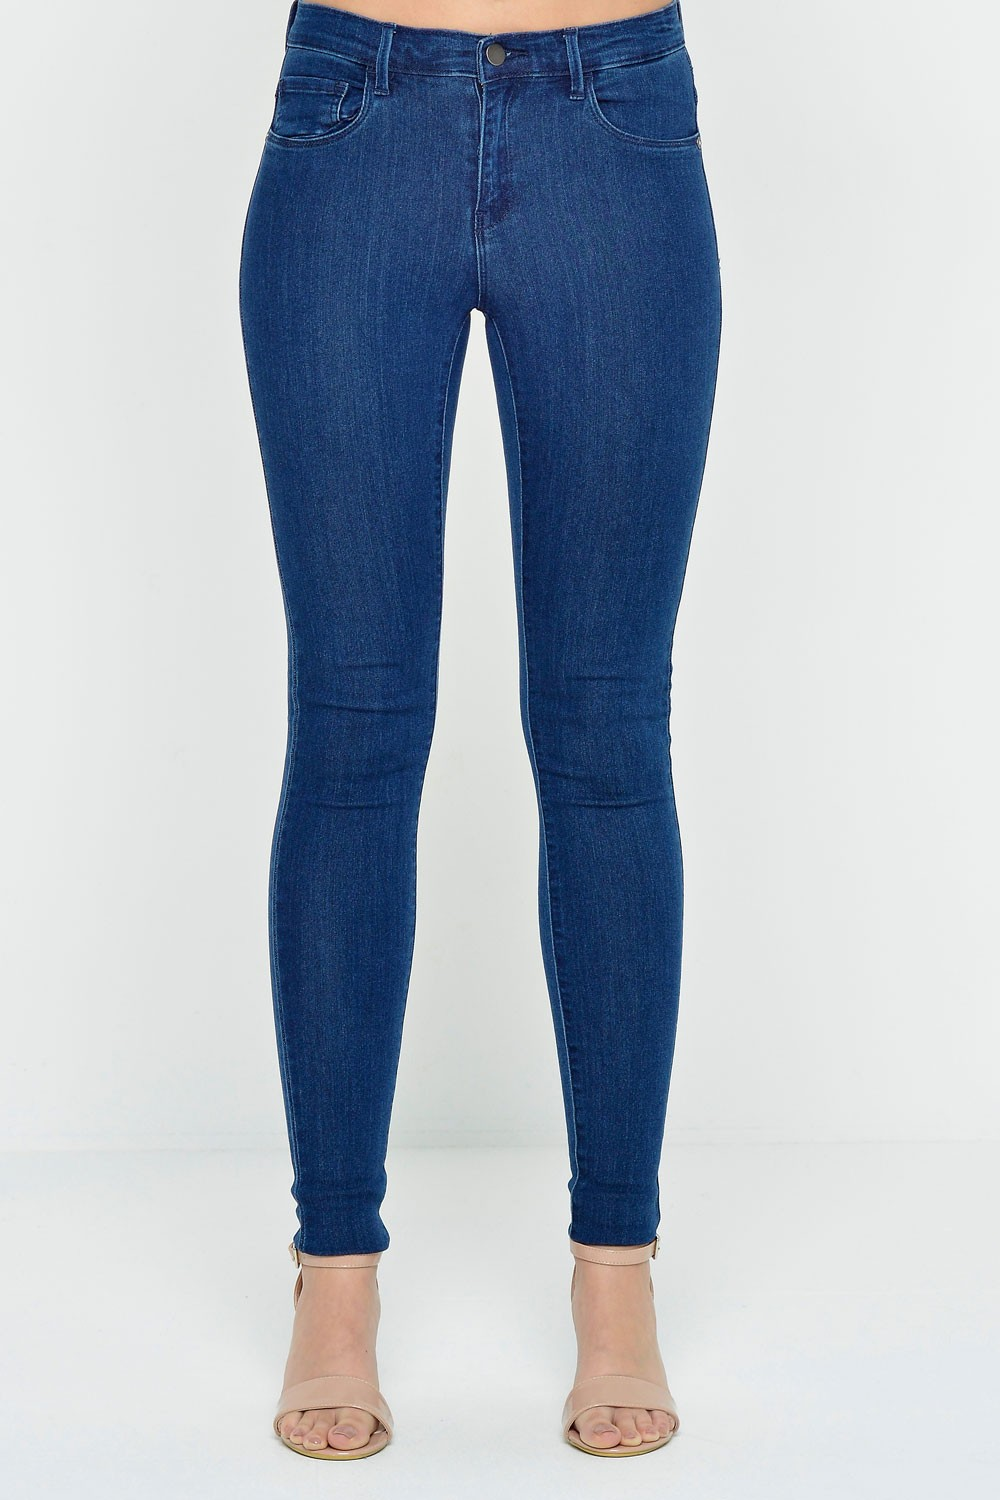 Rain Regular Skinny Jeans in Blue